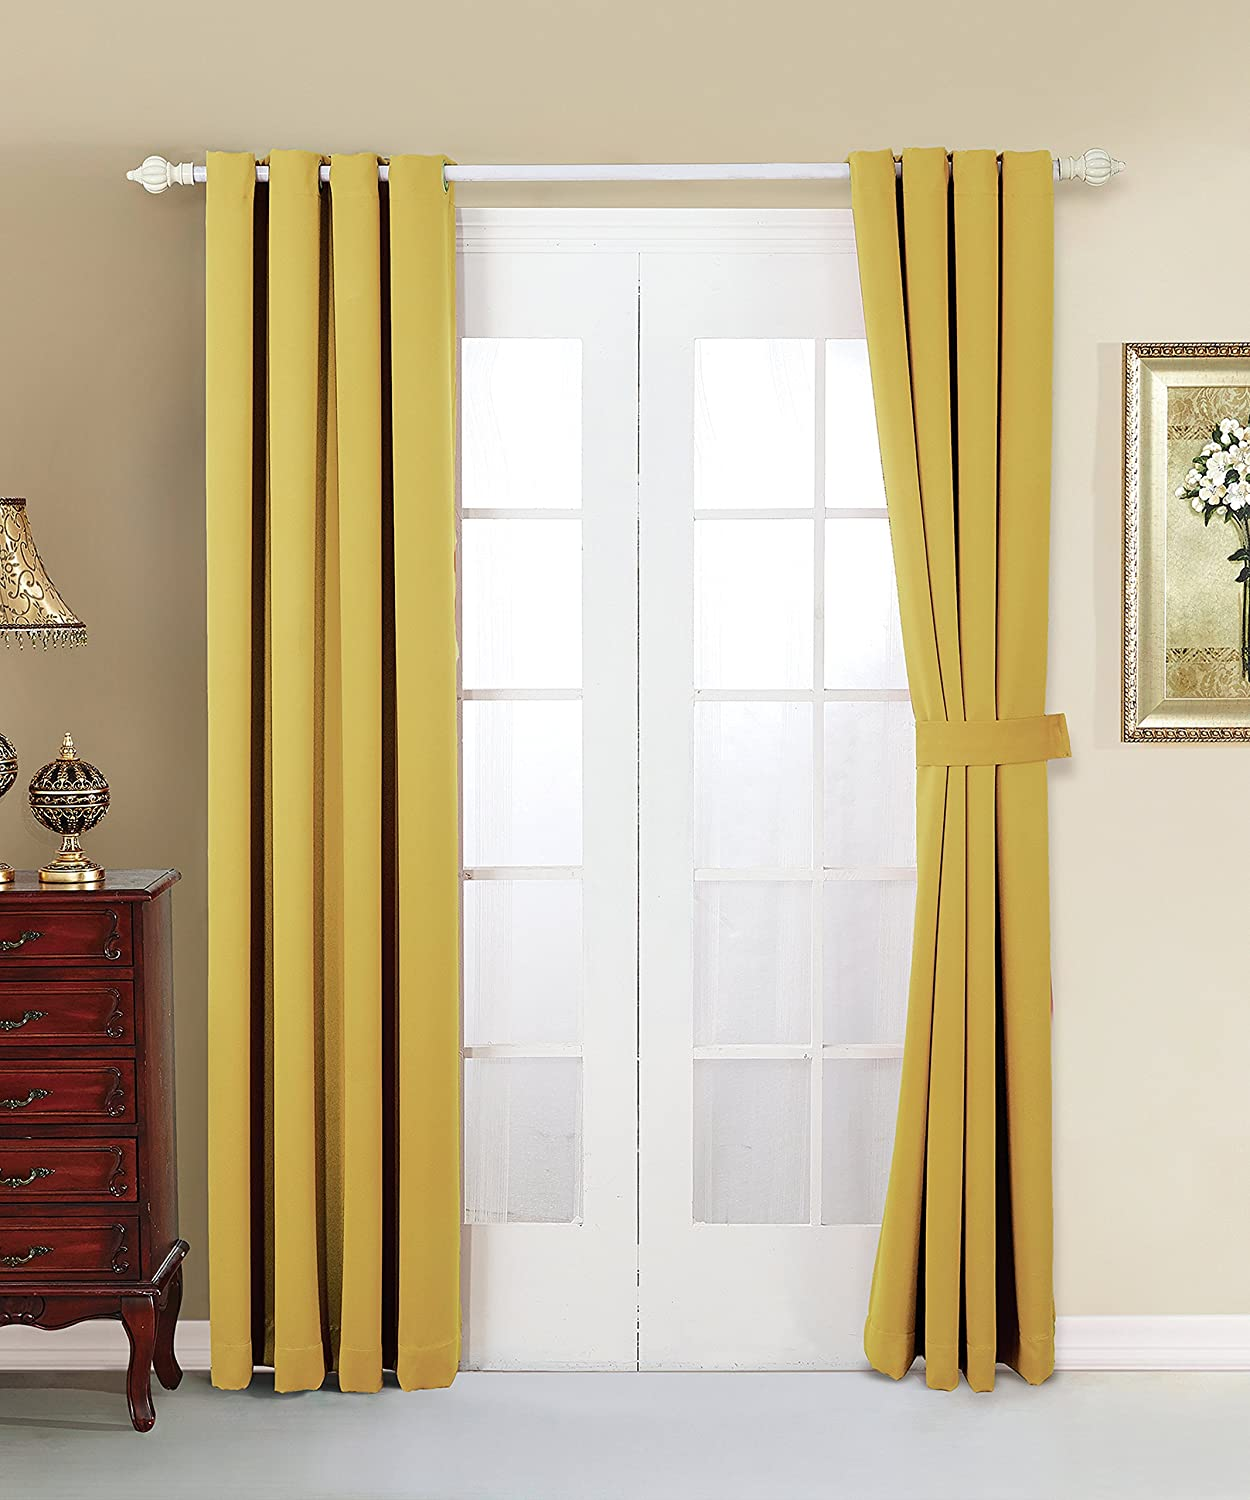 Serenta 4 Piece Grommet Darkening Thermal Insulated Blackout Window Panel Curtain Jojoba Yellow